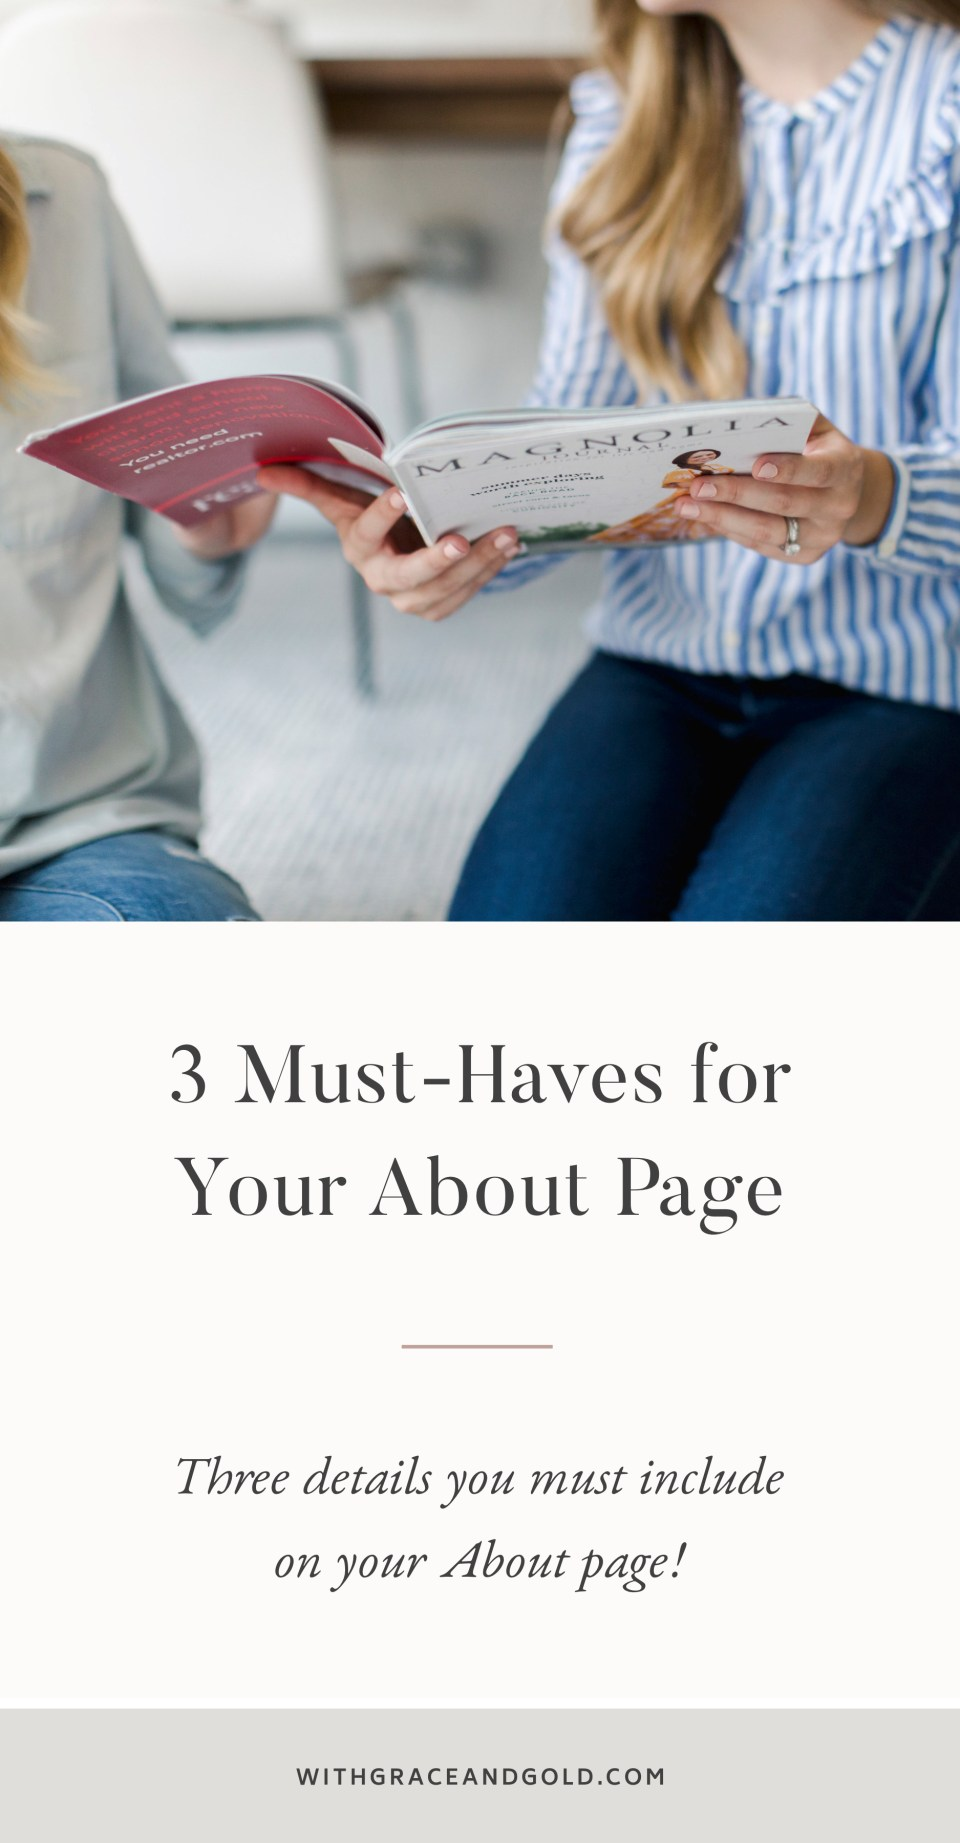 3 Must Haves for Your About Page by With Grace and Gold